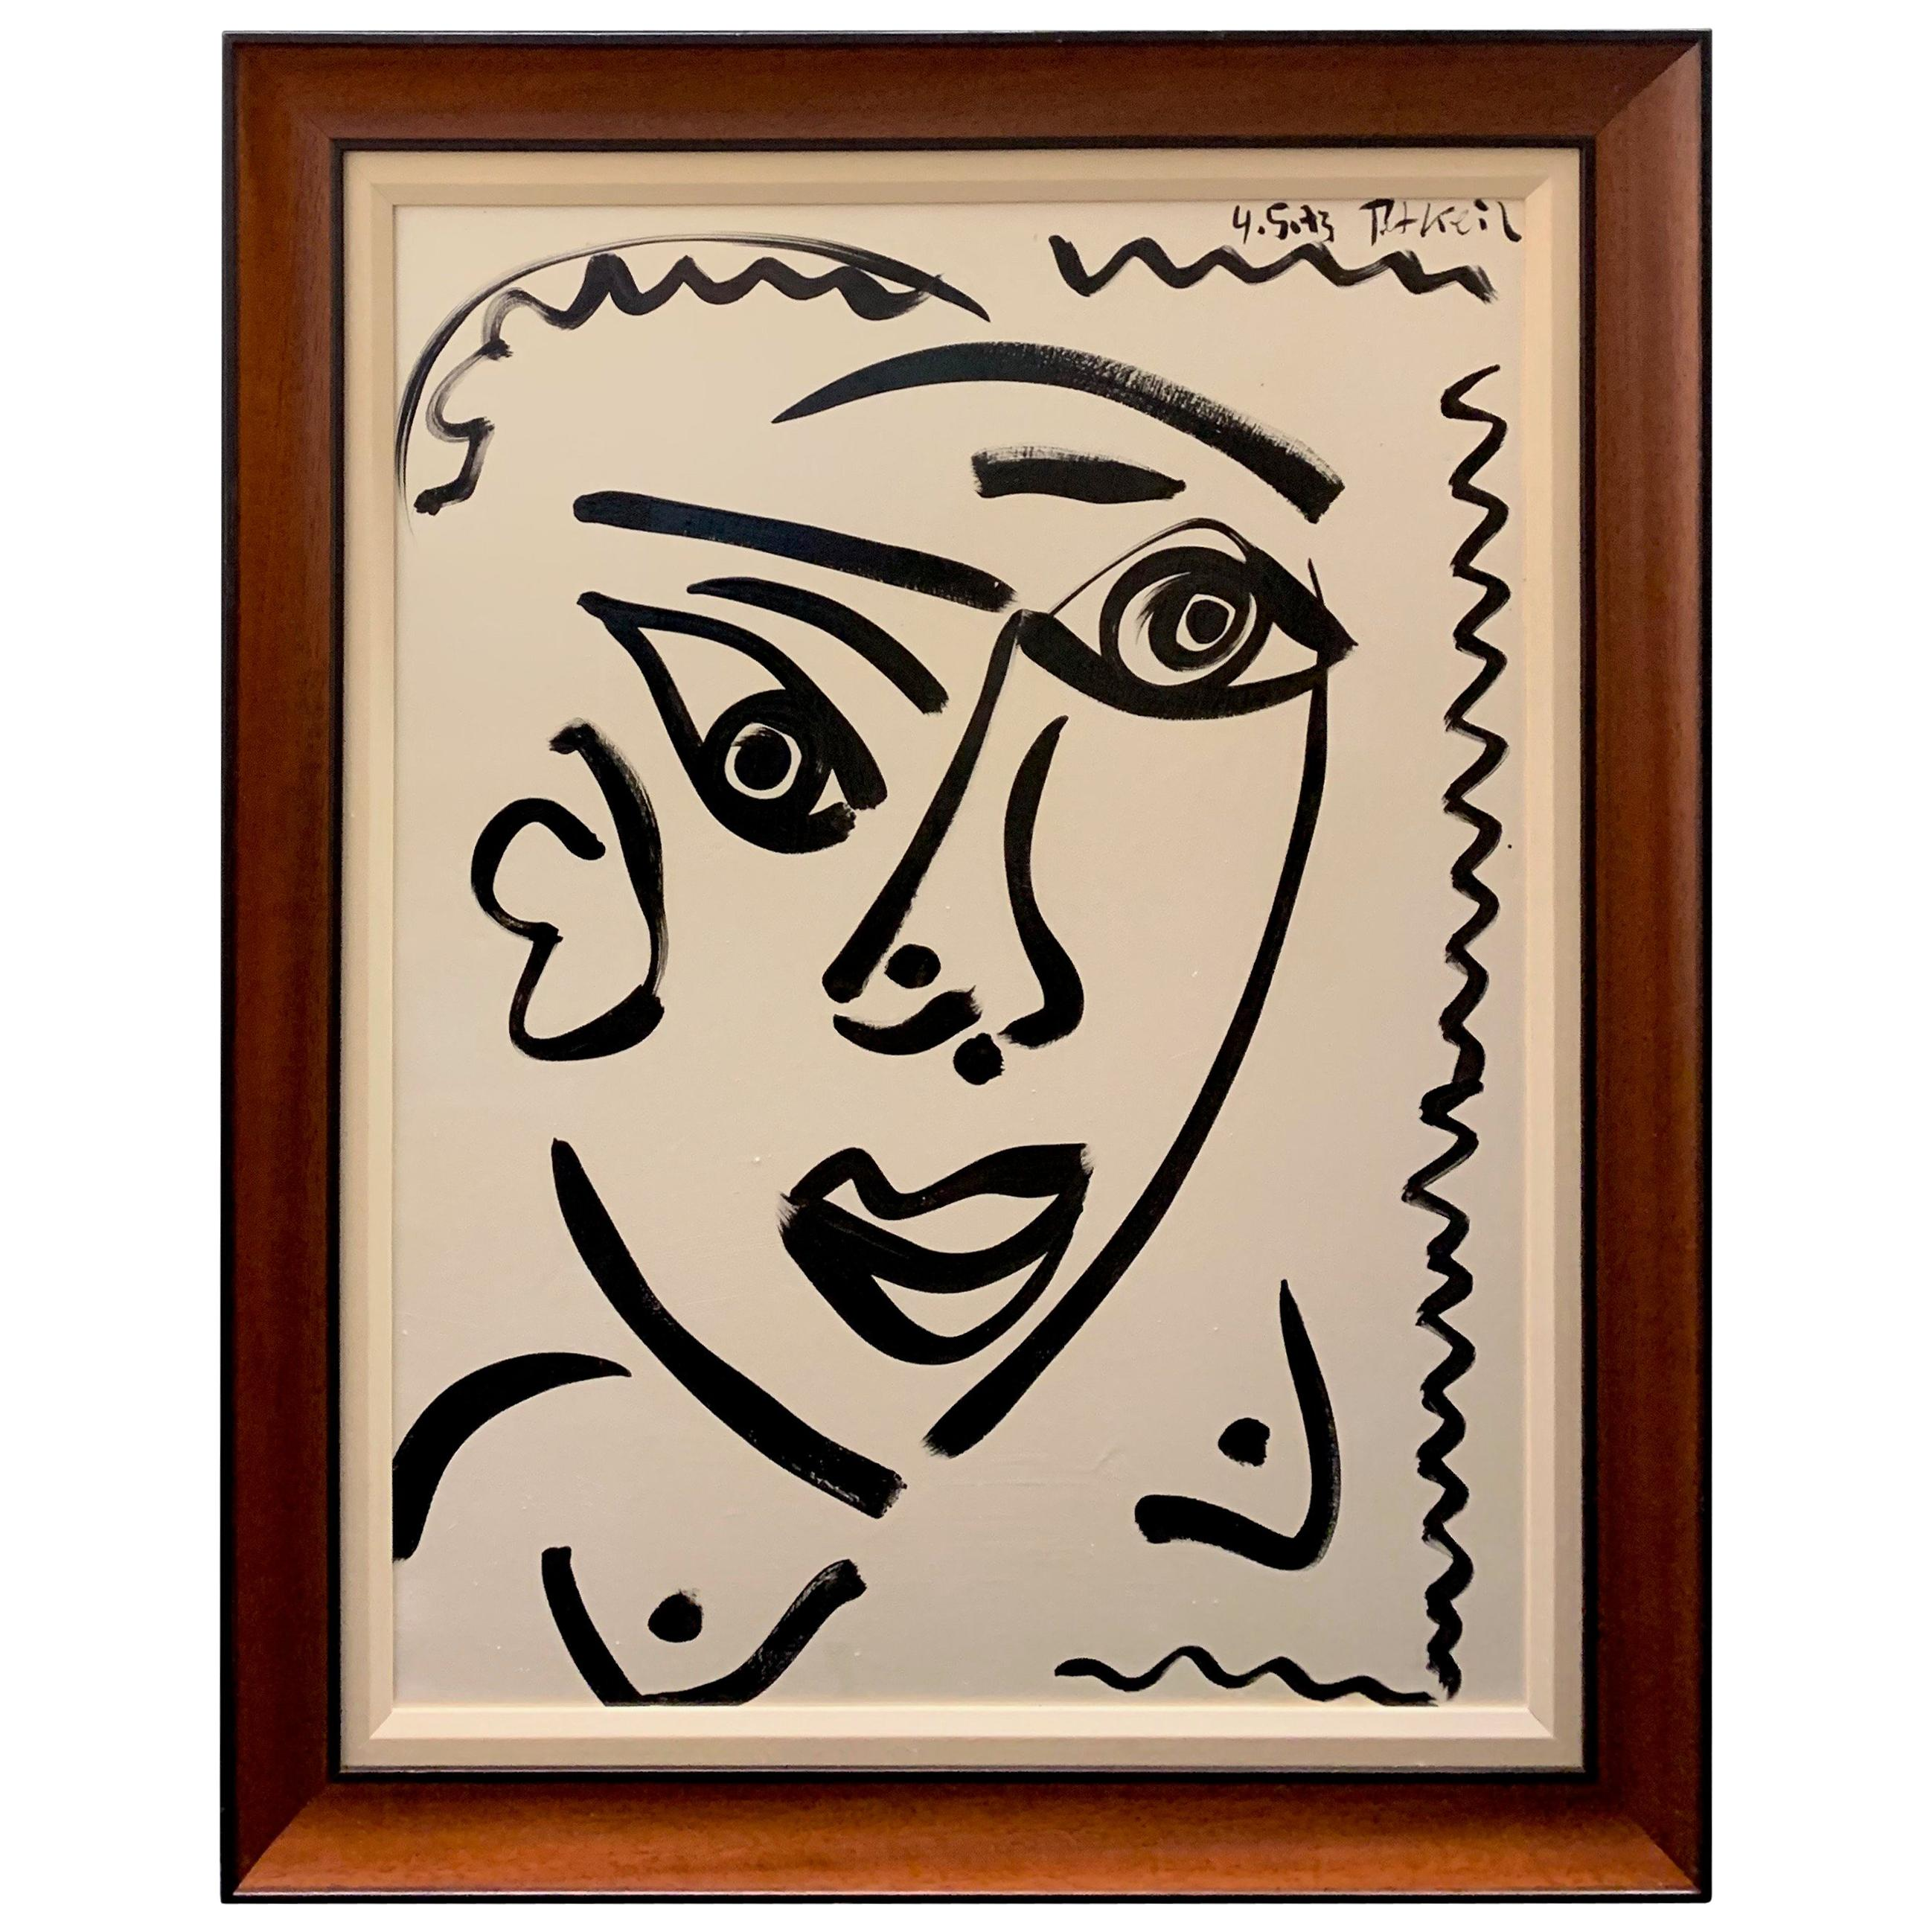 Peter Keil Framed Expressionist Oil on Board Portrait Painting